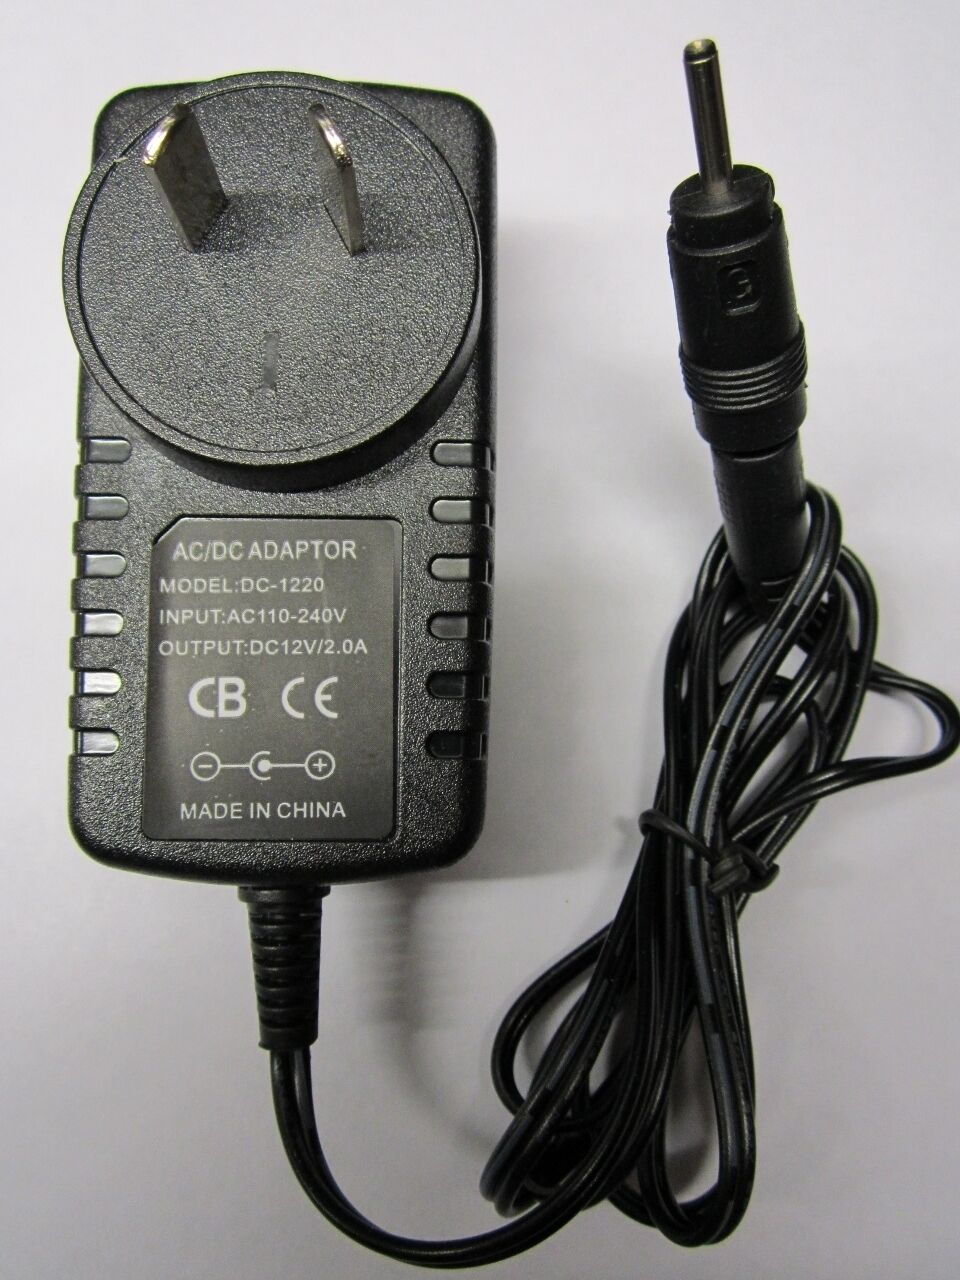 12V 3x1.1 2A 1.5A 1A AU AUS Mains AC-DC Switching Adaptor Power Supply Charger